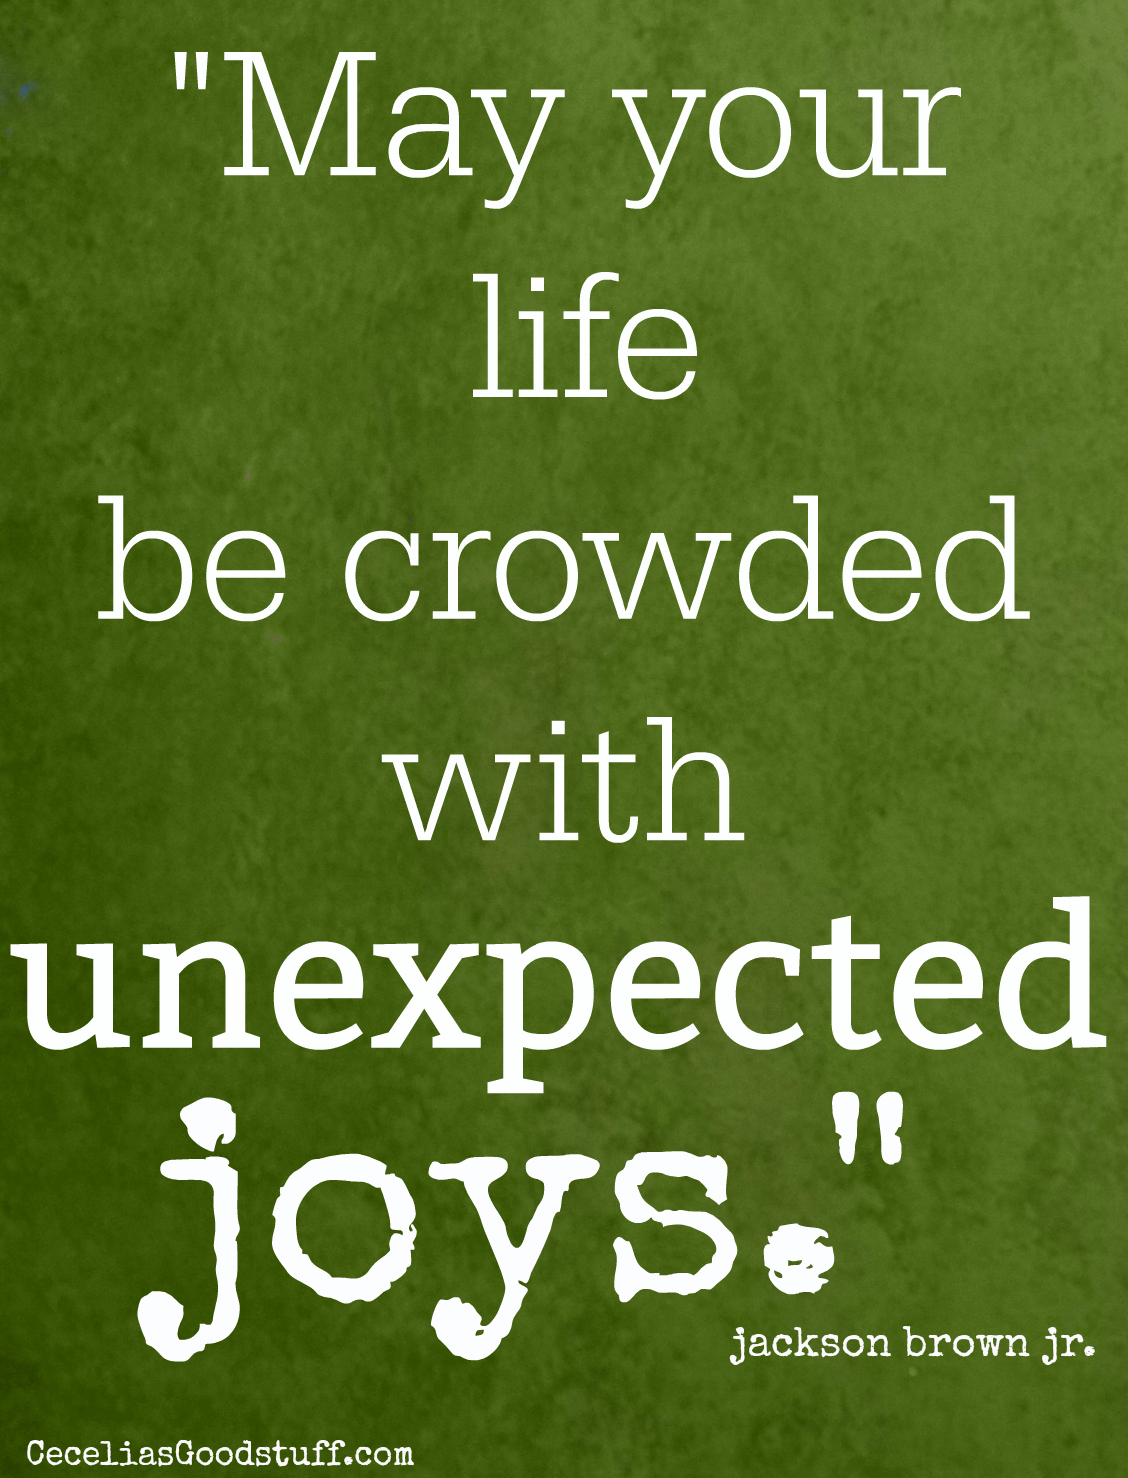 Inspiration for the day - Quote by Jackson Brown Jr. - unexpected joys